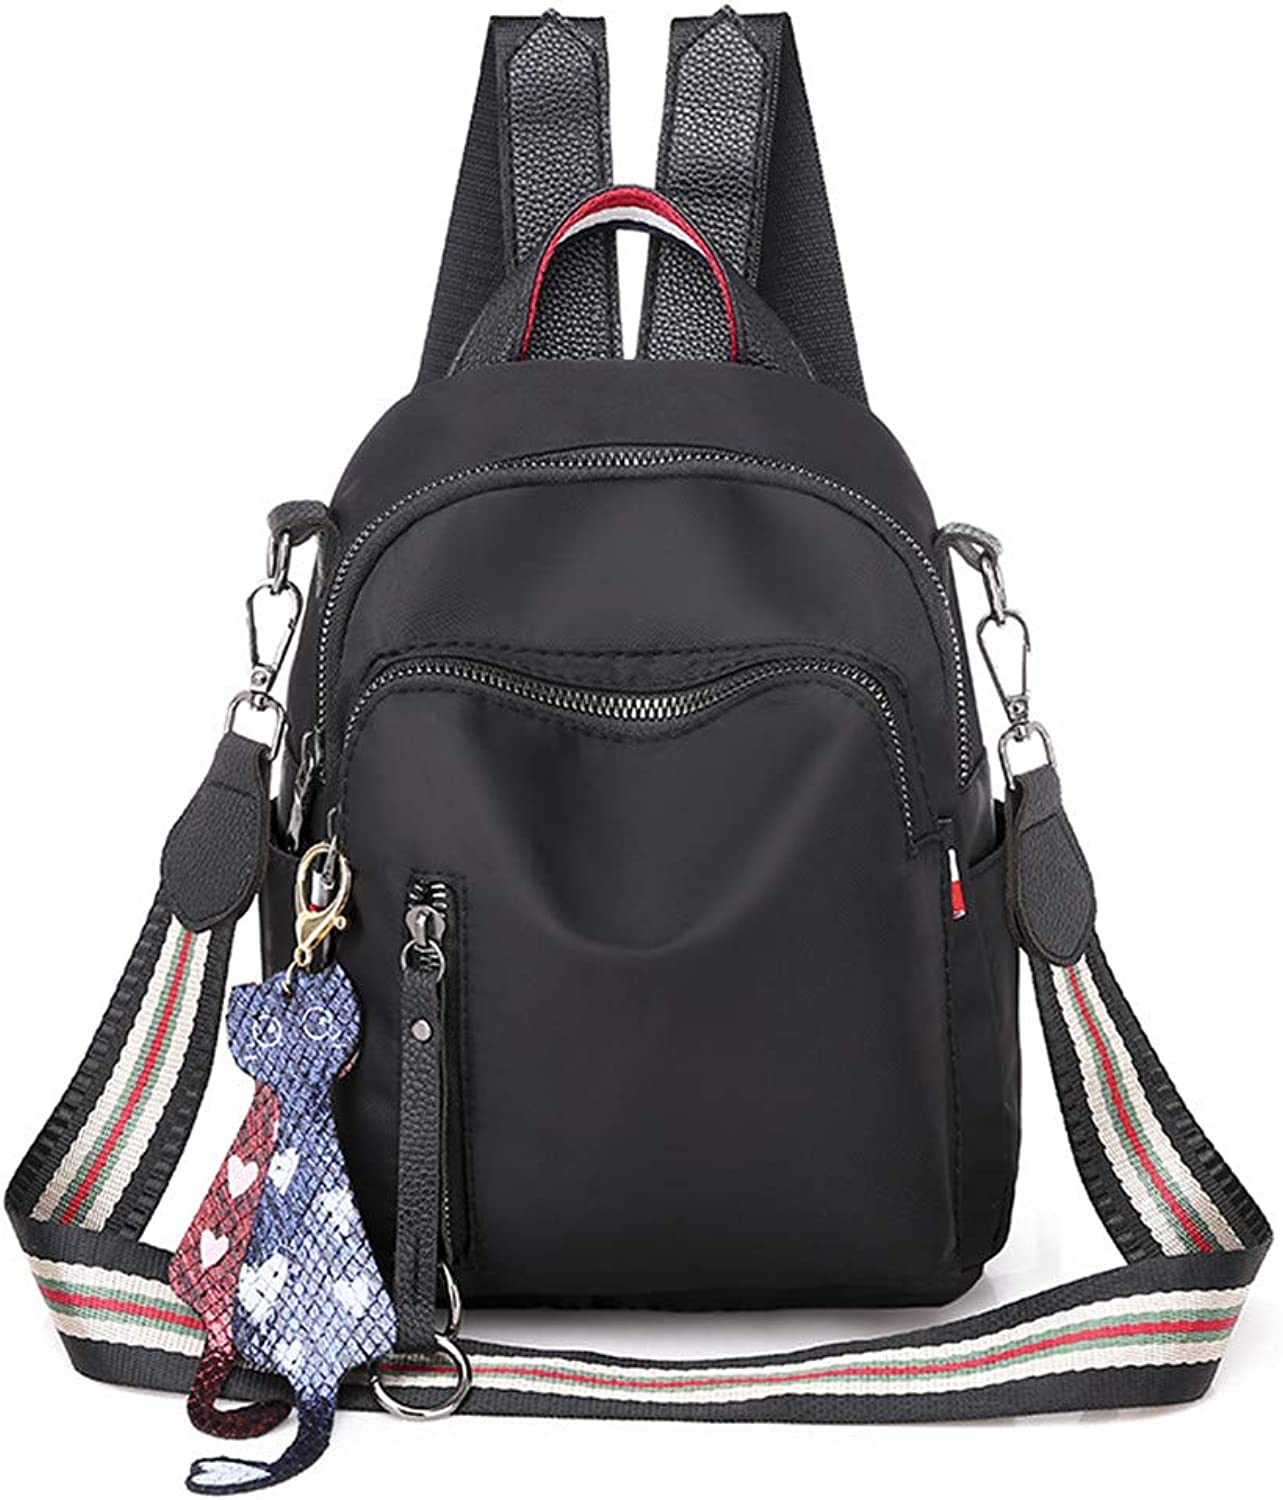 Shoulder Bag Oxford Cloth Canvas Small Backpack, Black Casual Practical Simple